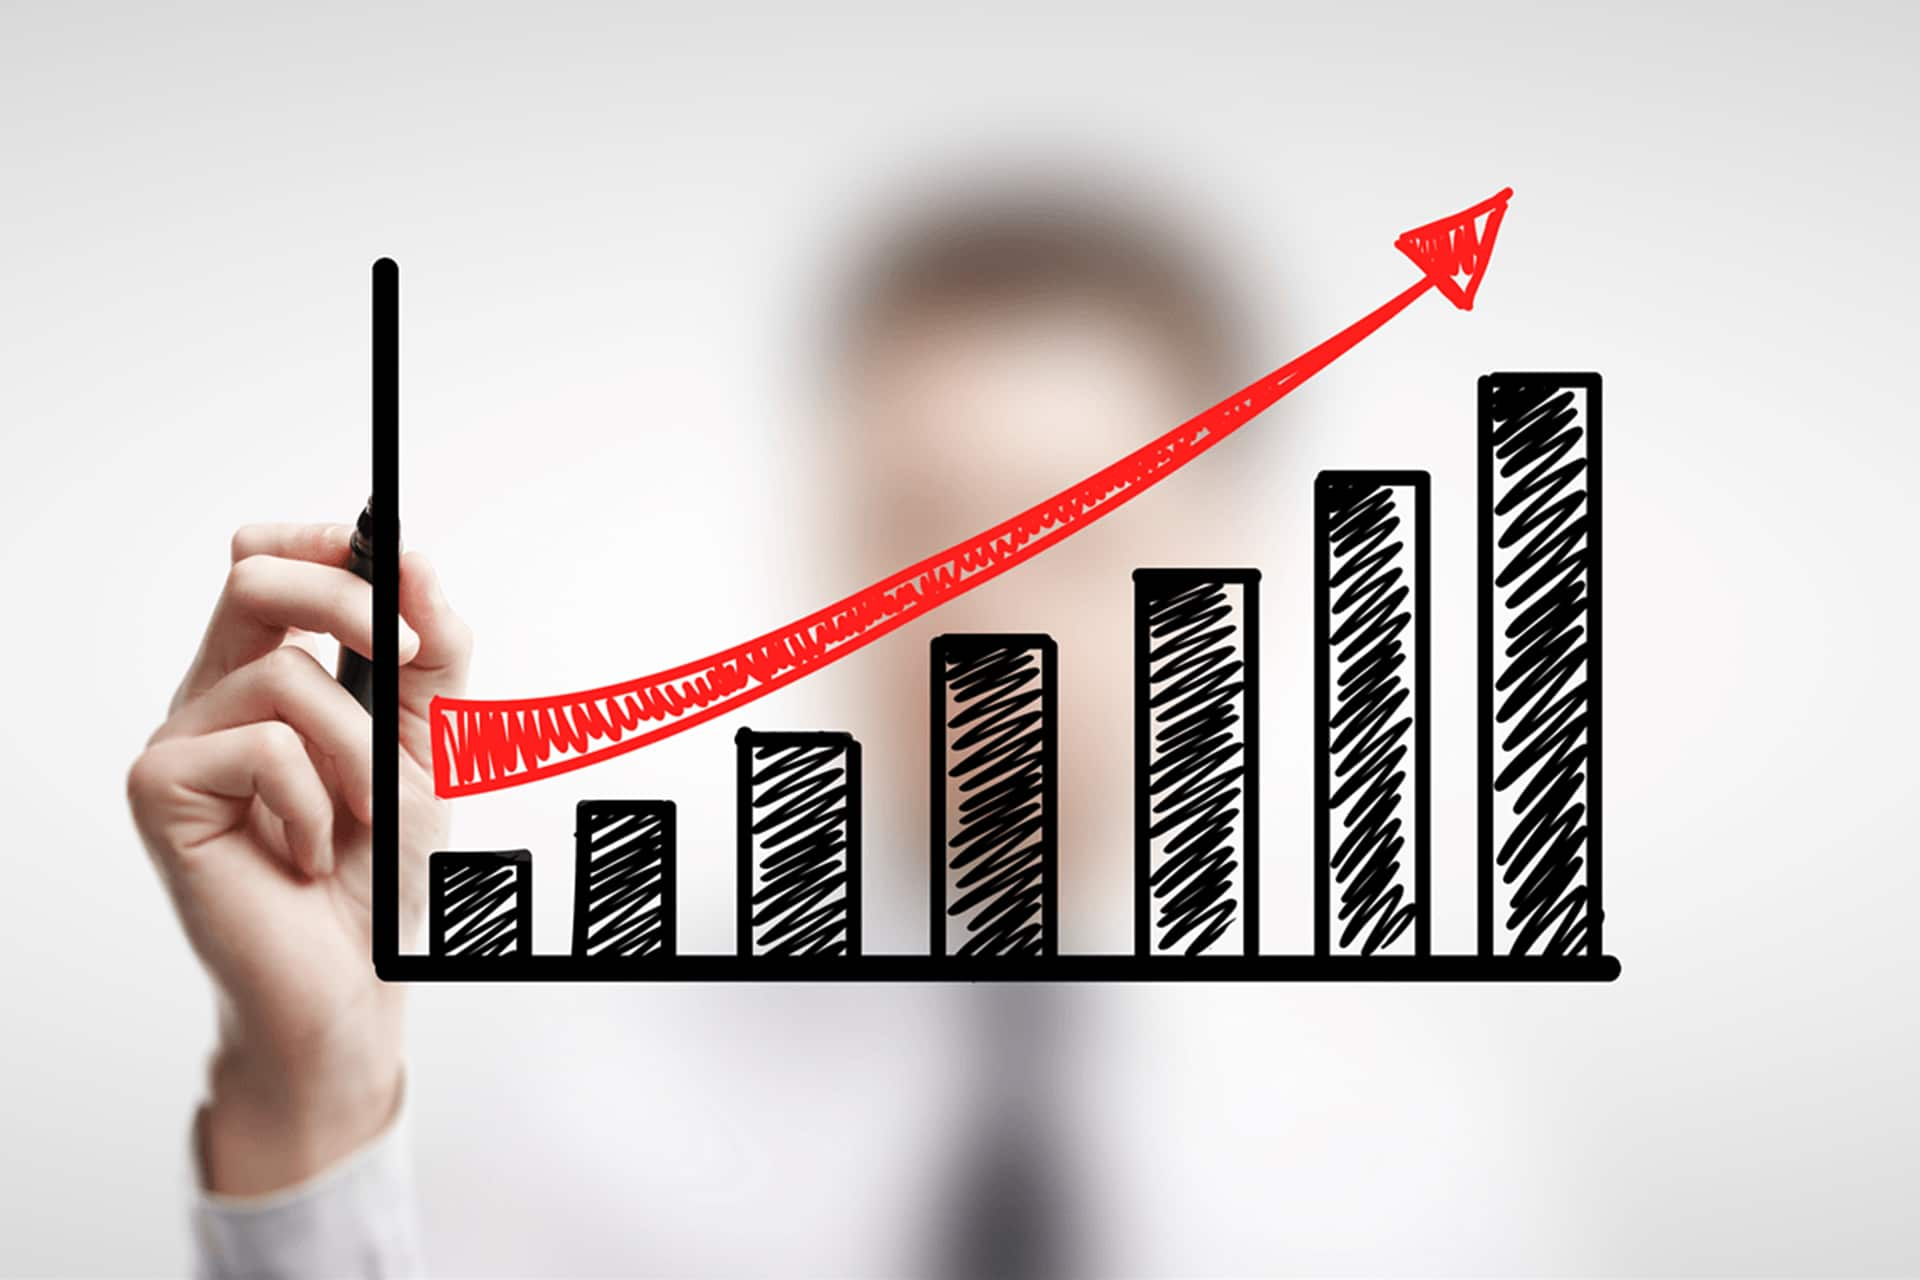 The 7 Rules Of Growth For Small Businesses